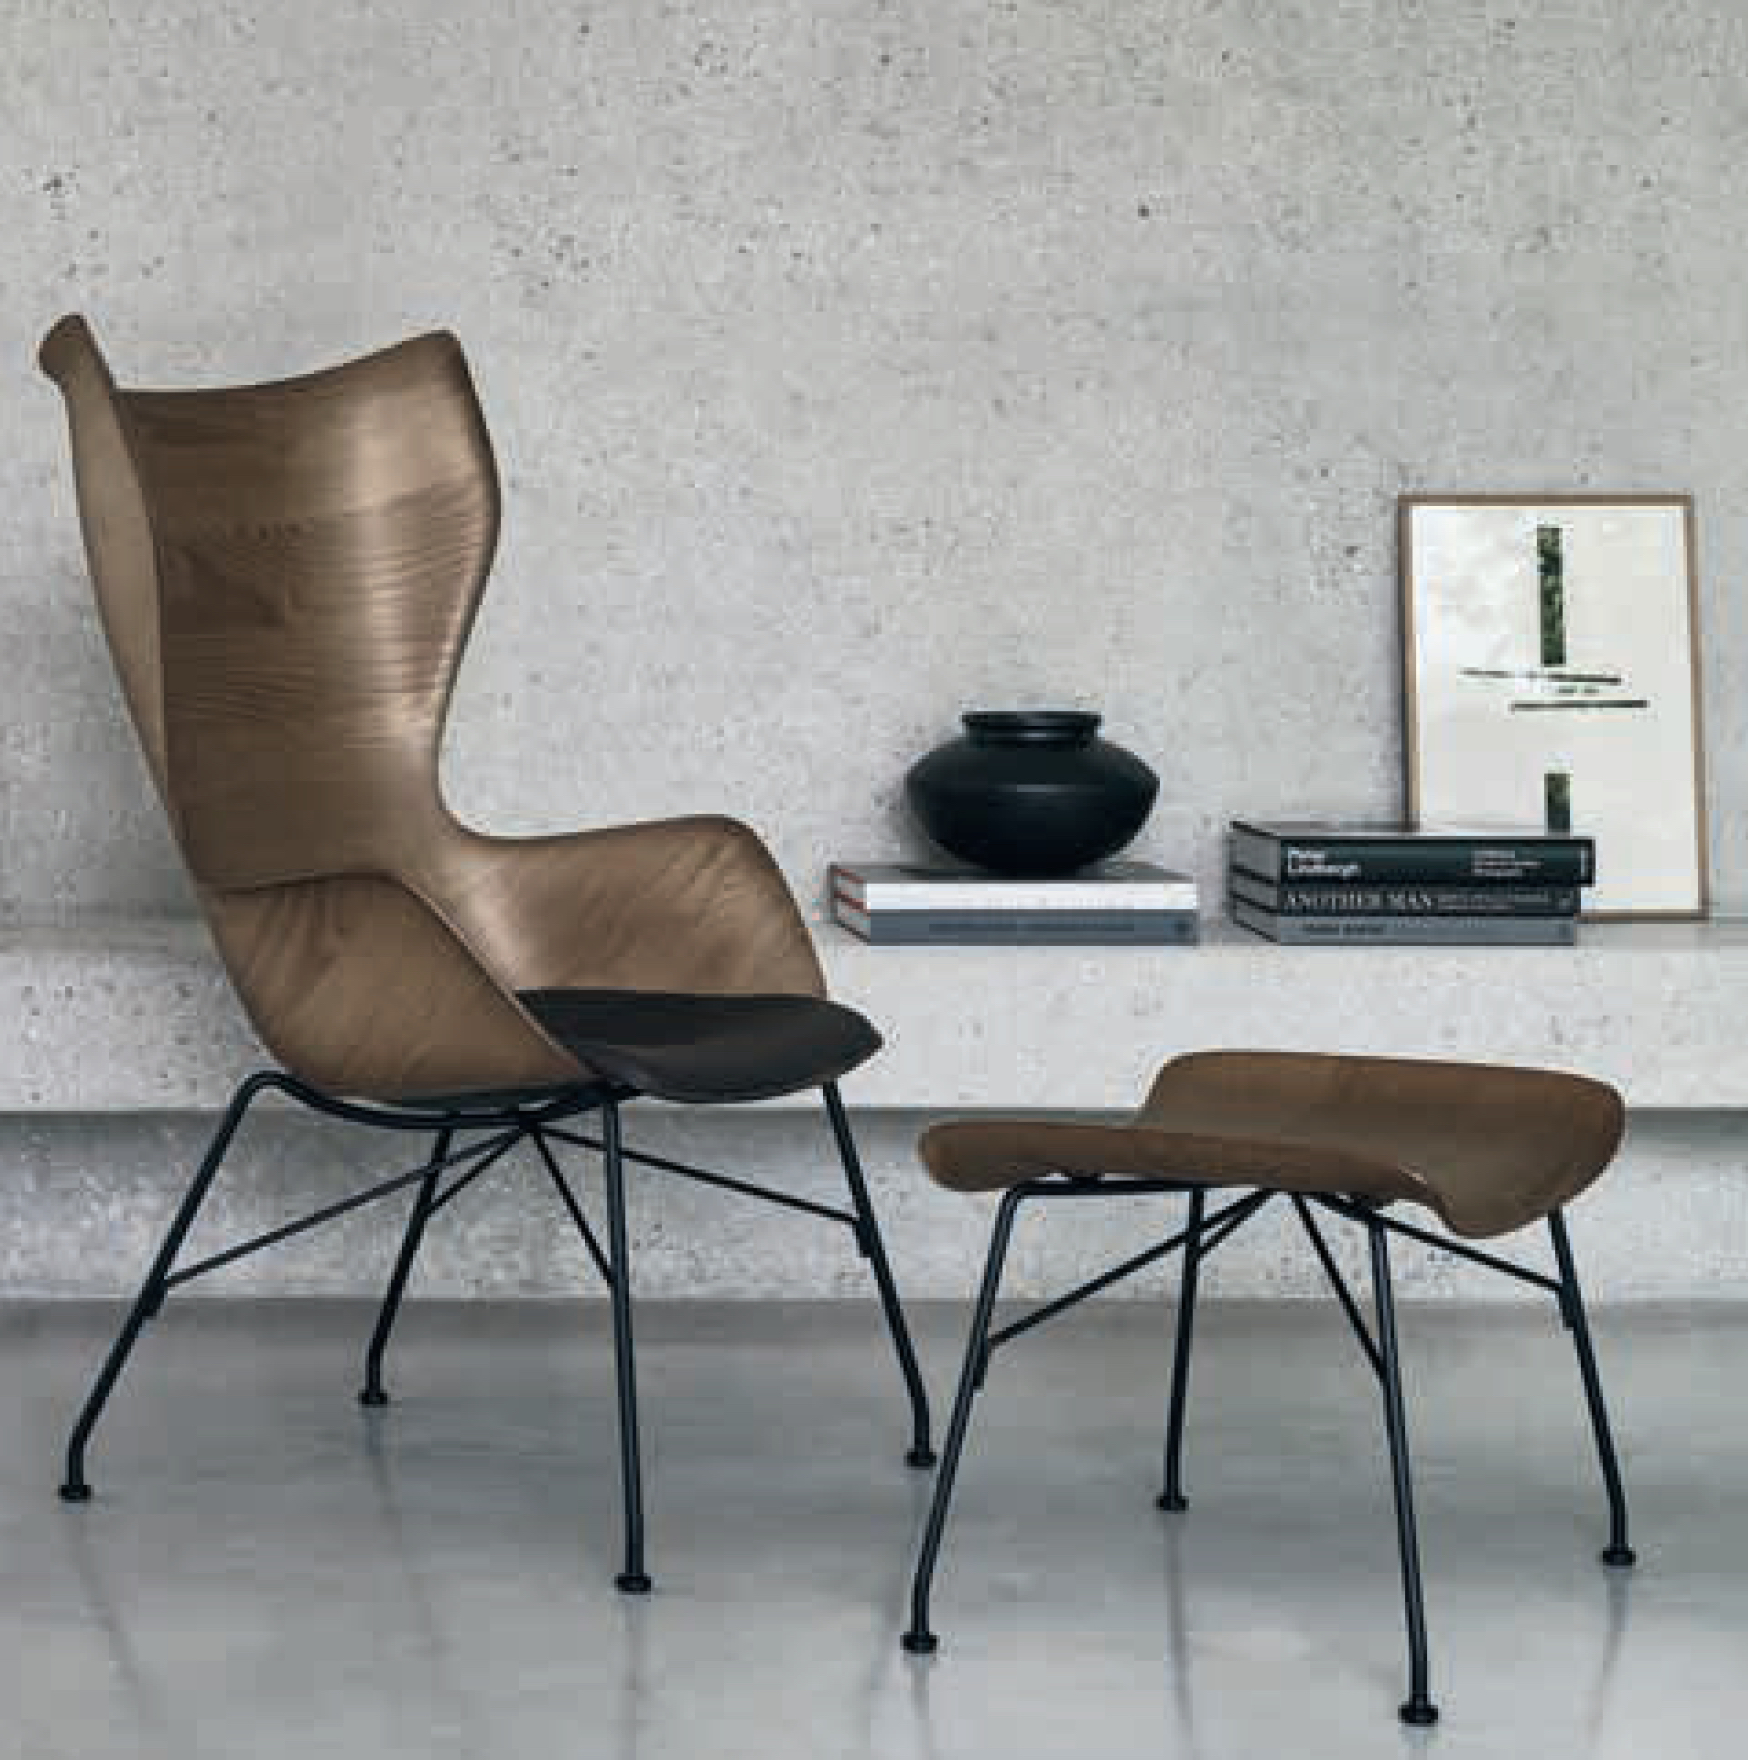 Kartell Chair S / WOOD